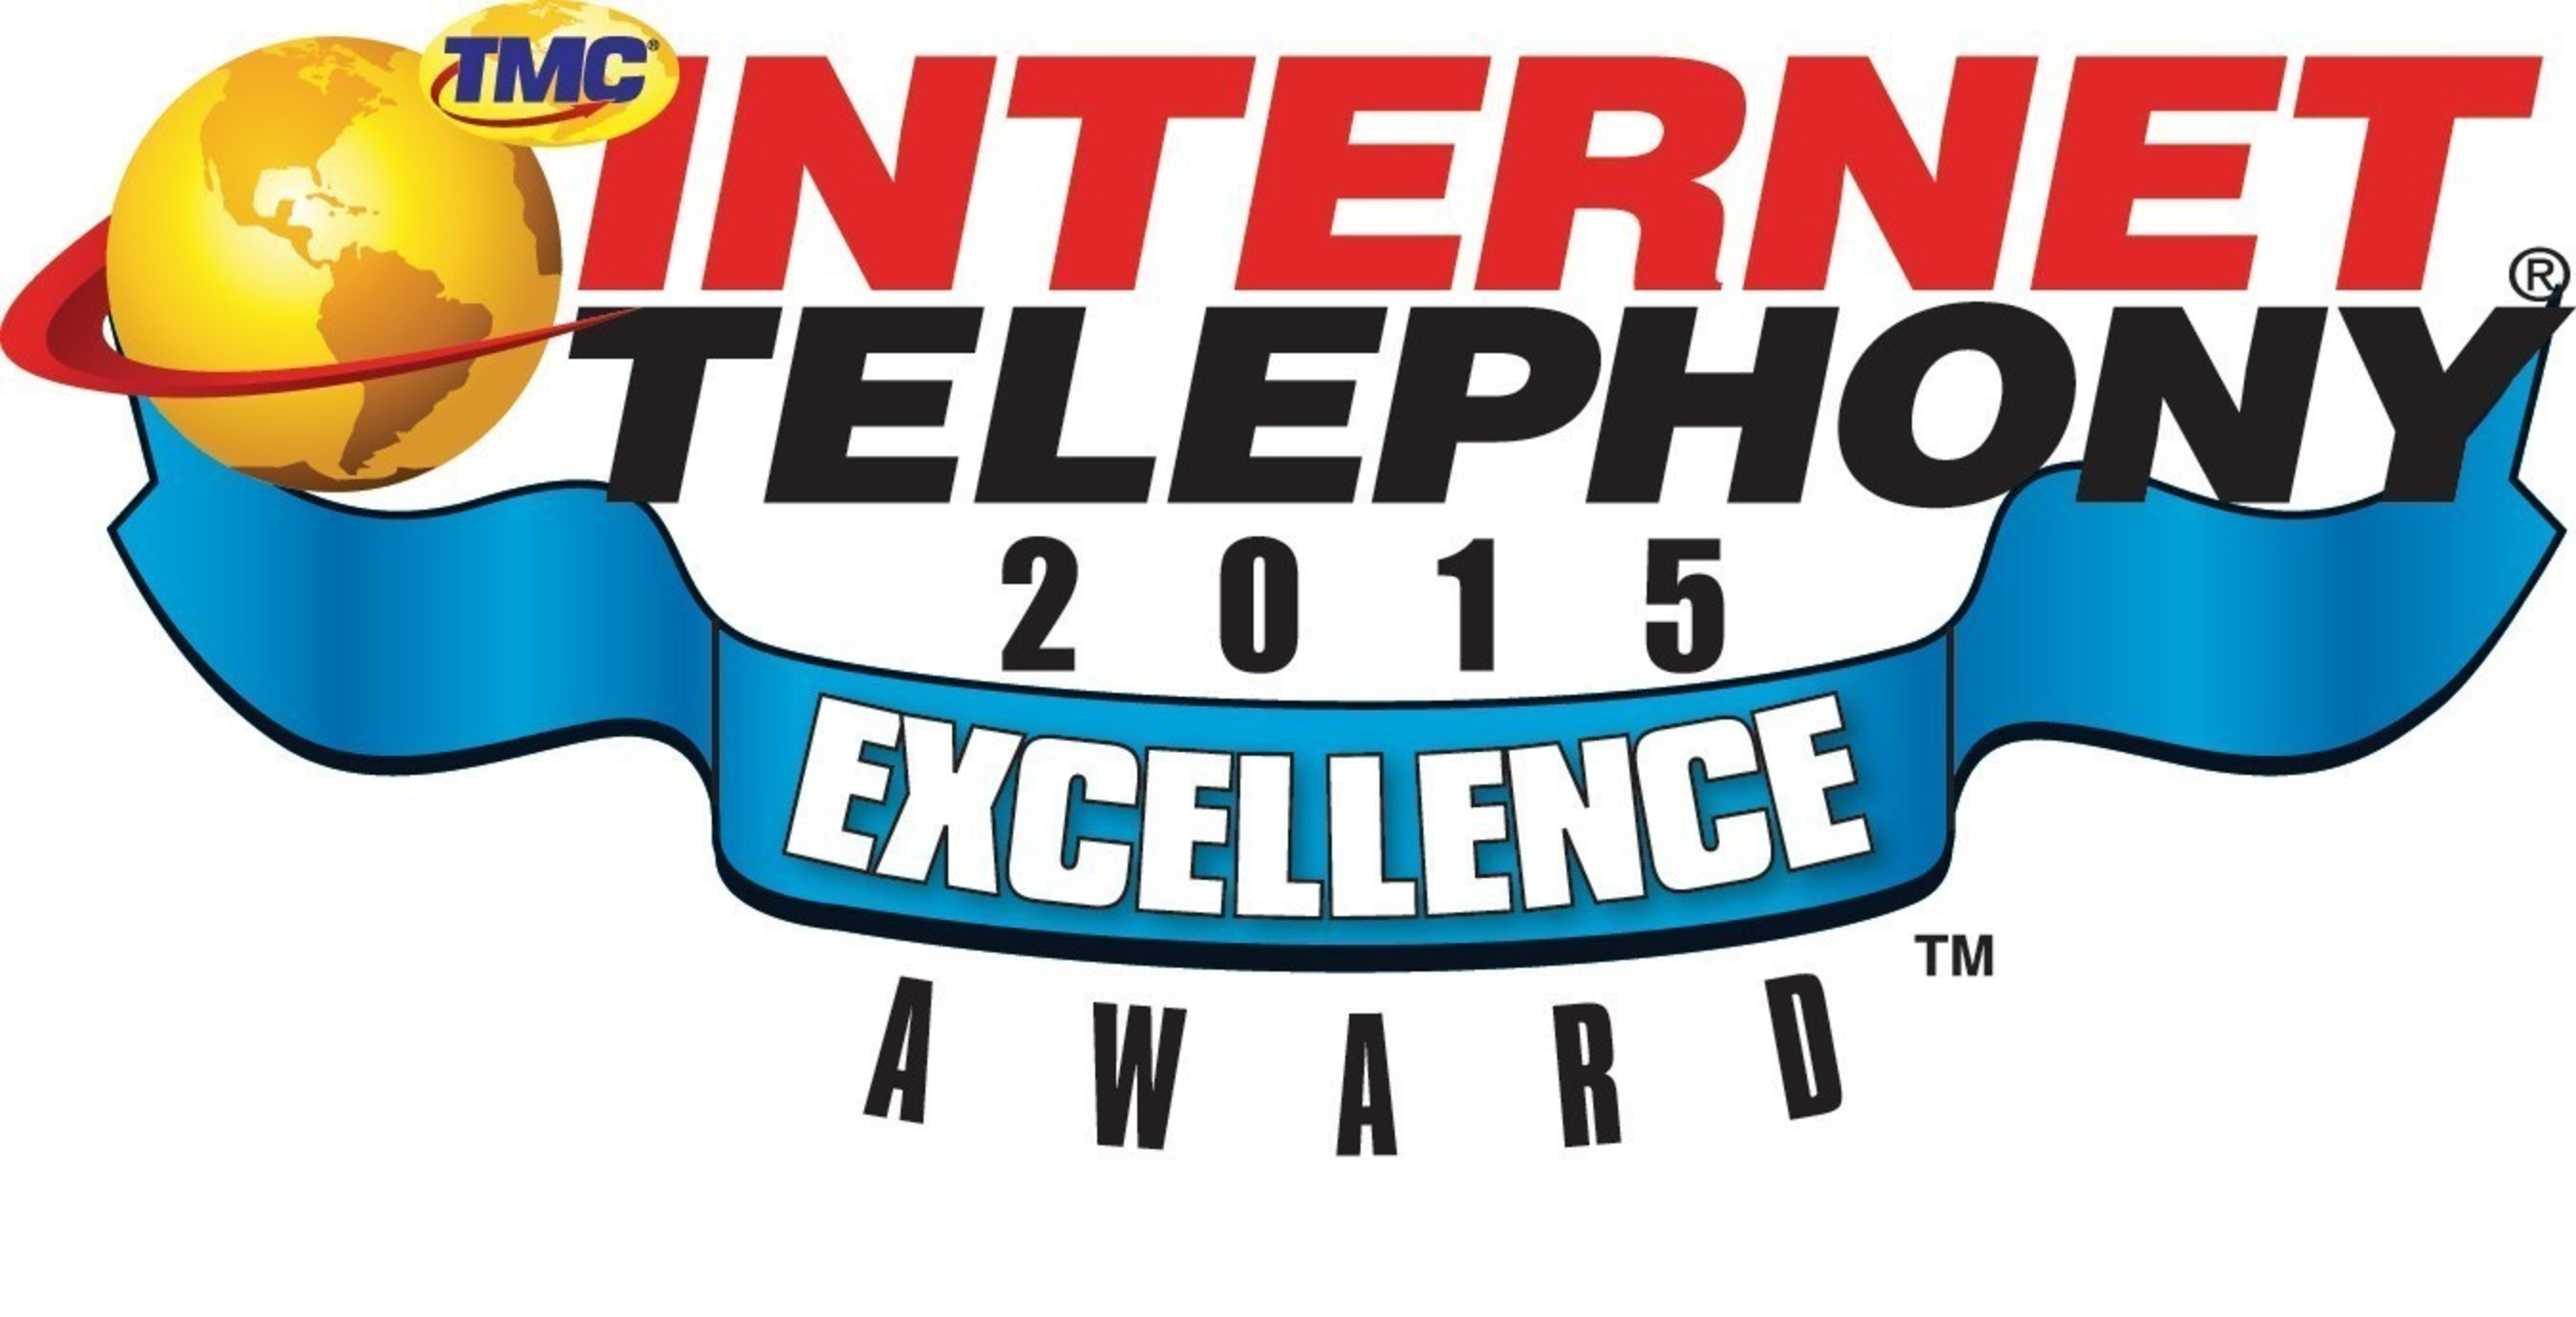 Toshiba's Hybrid Cloud and On-premise VoIP Networking Solution Wins 2015 Internet Telephony Excellence Award